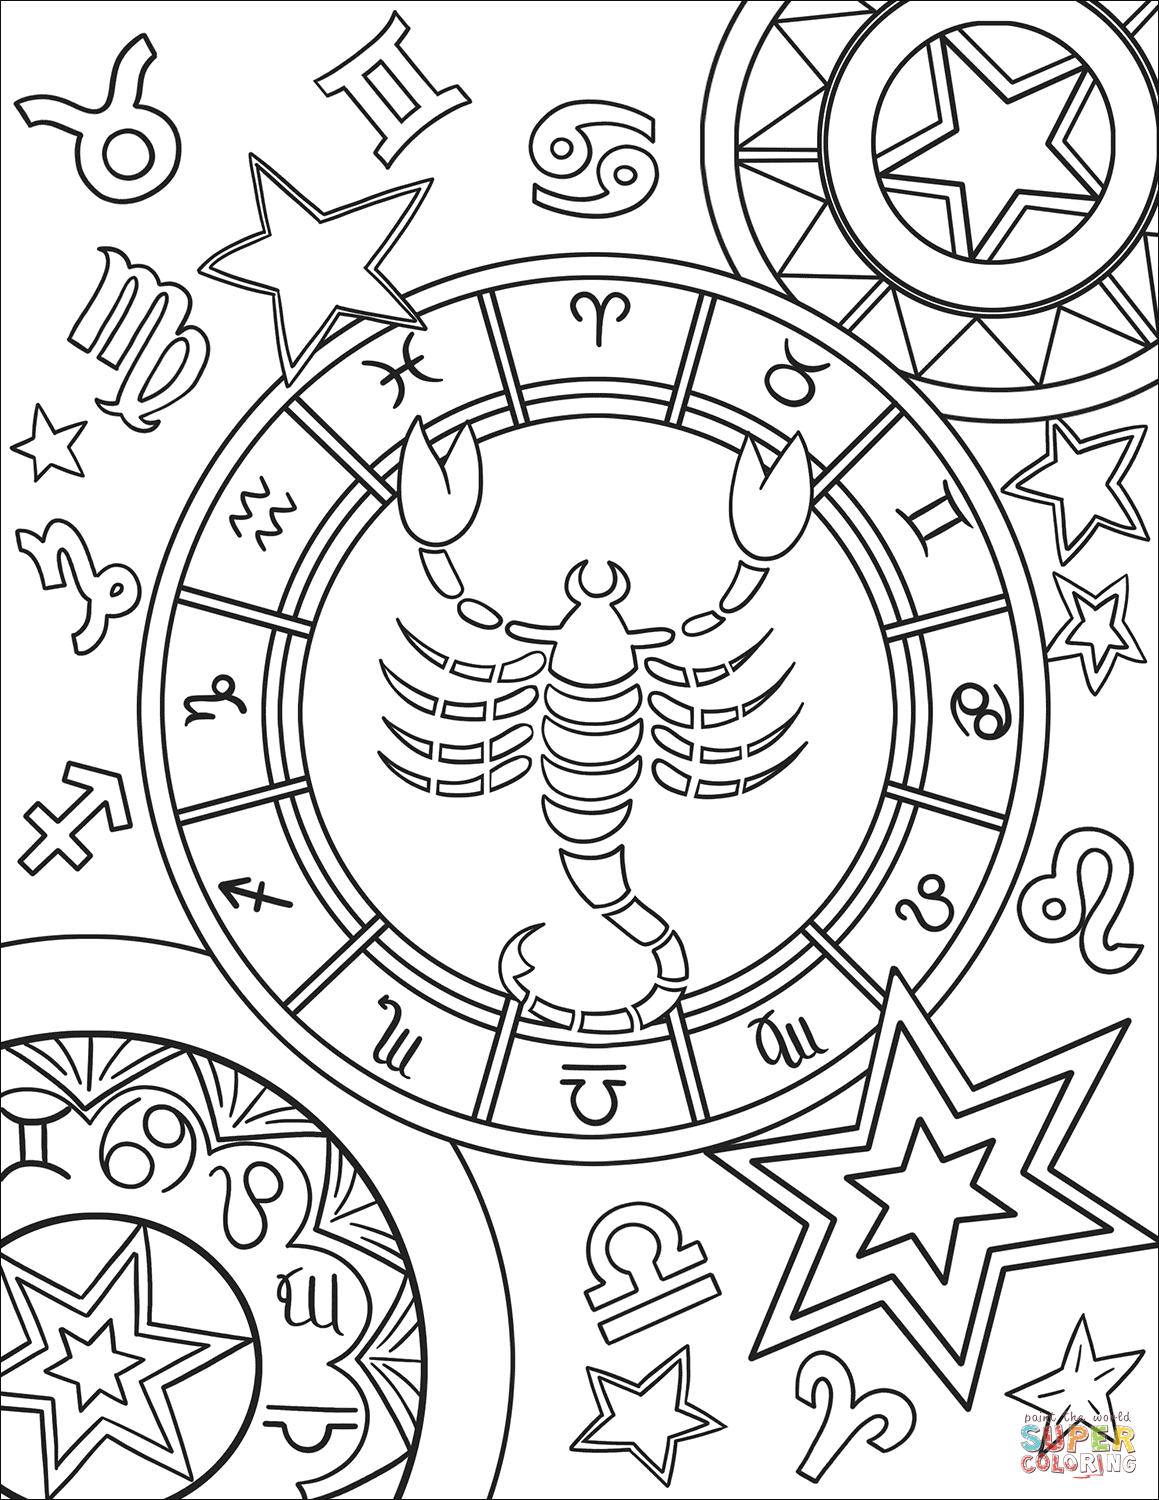 zodiac signs coloring pages zodiac signs coloring pages to download sketch coloring page zodiac signs pages coloring